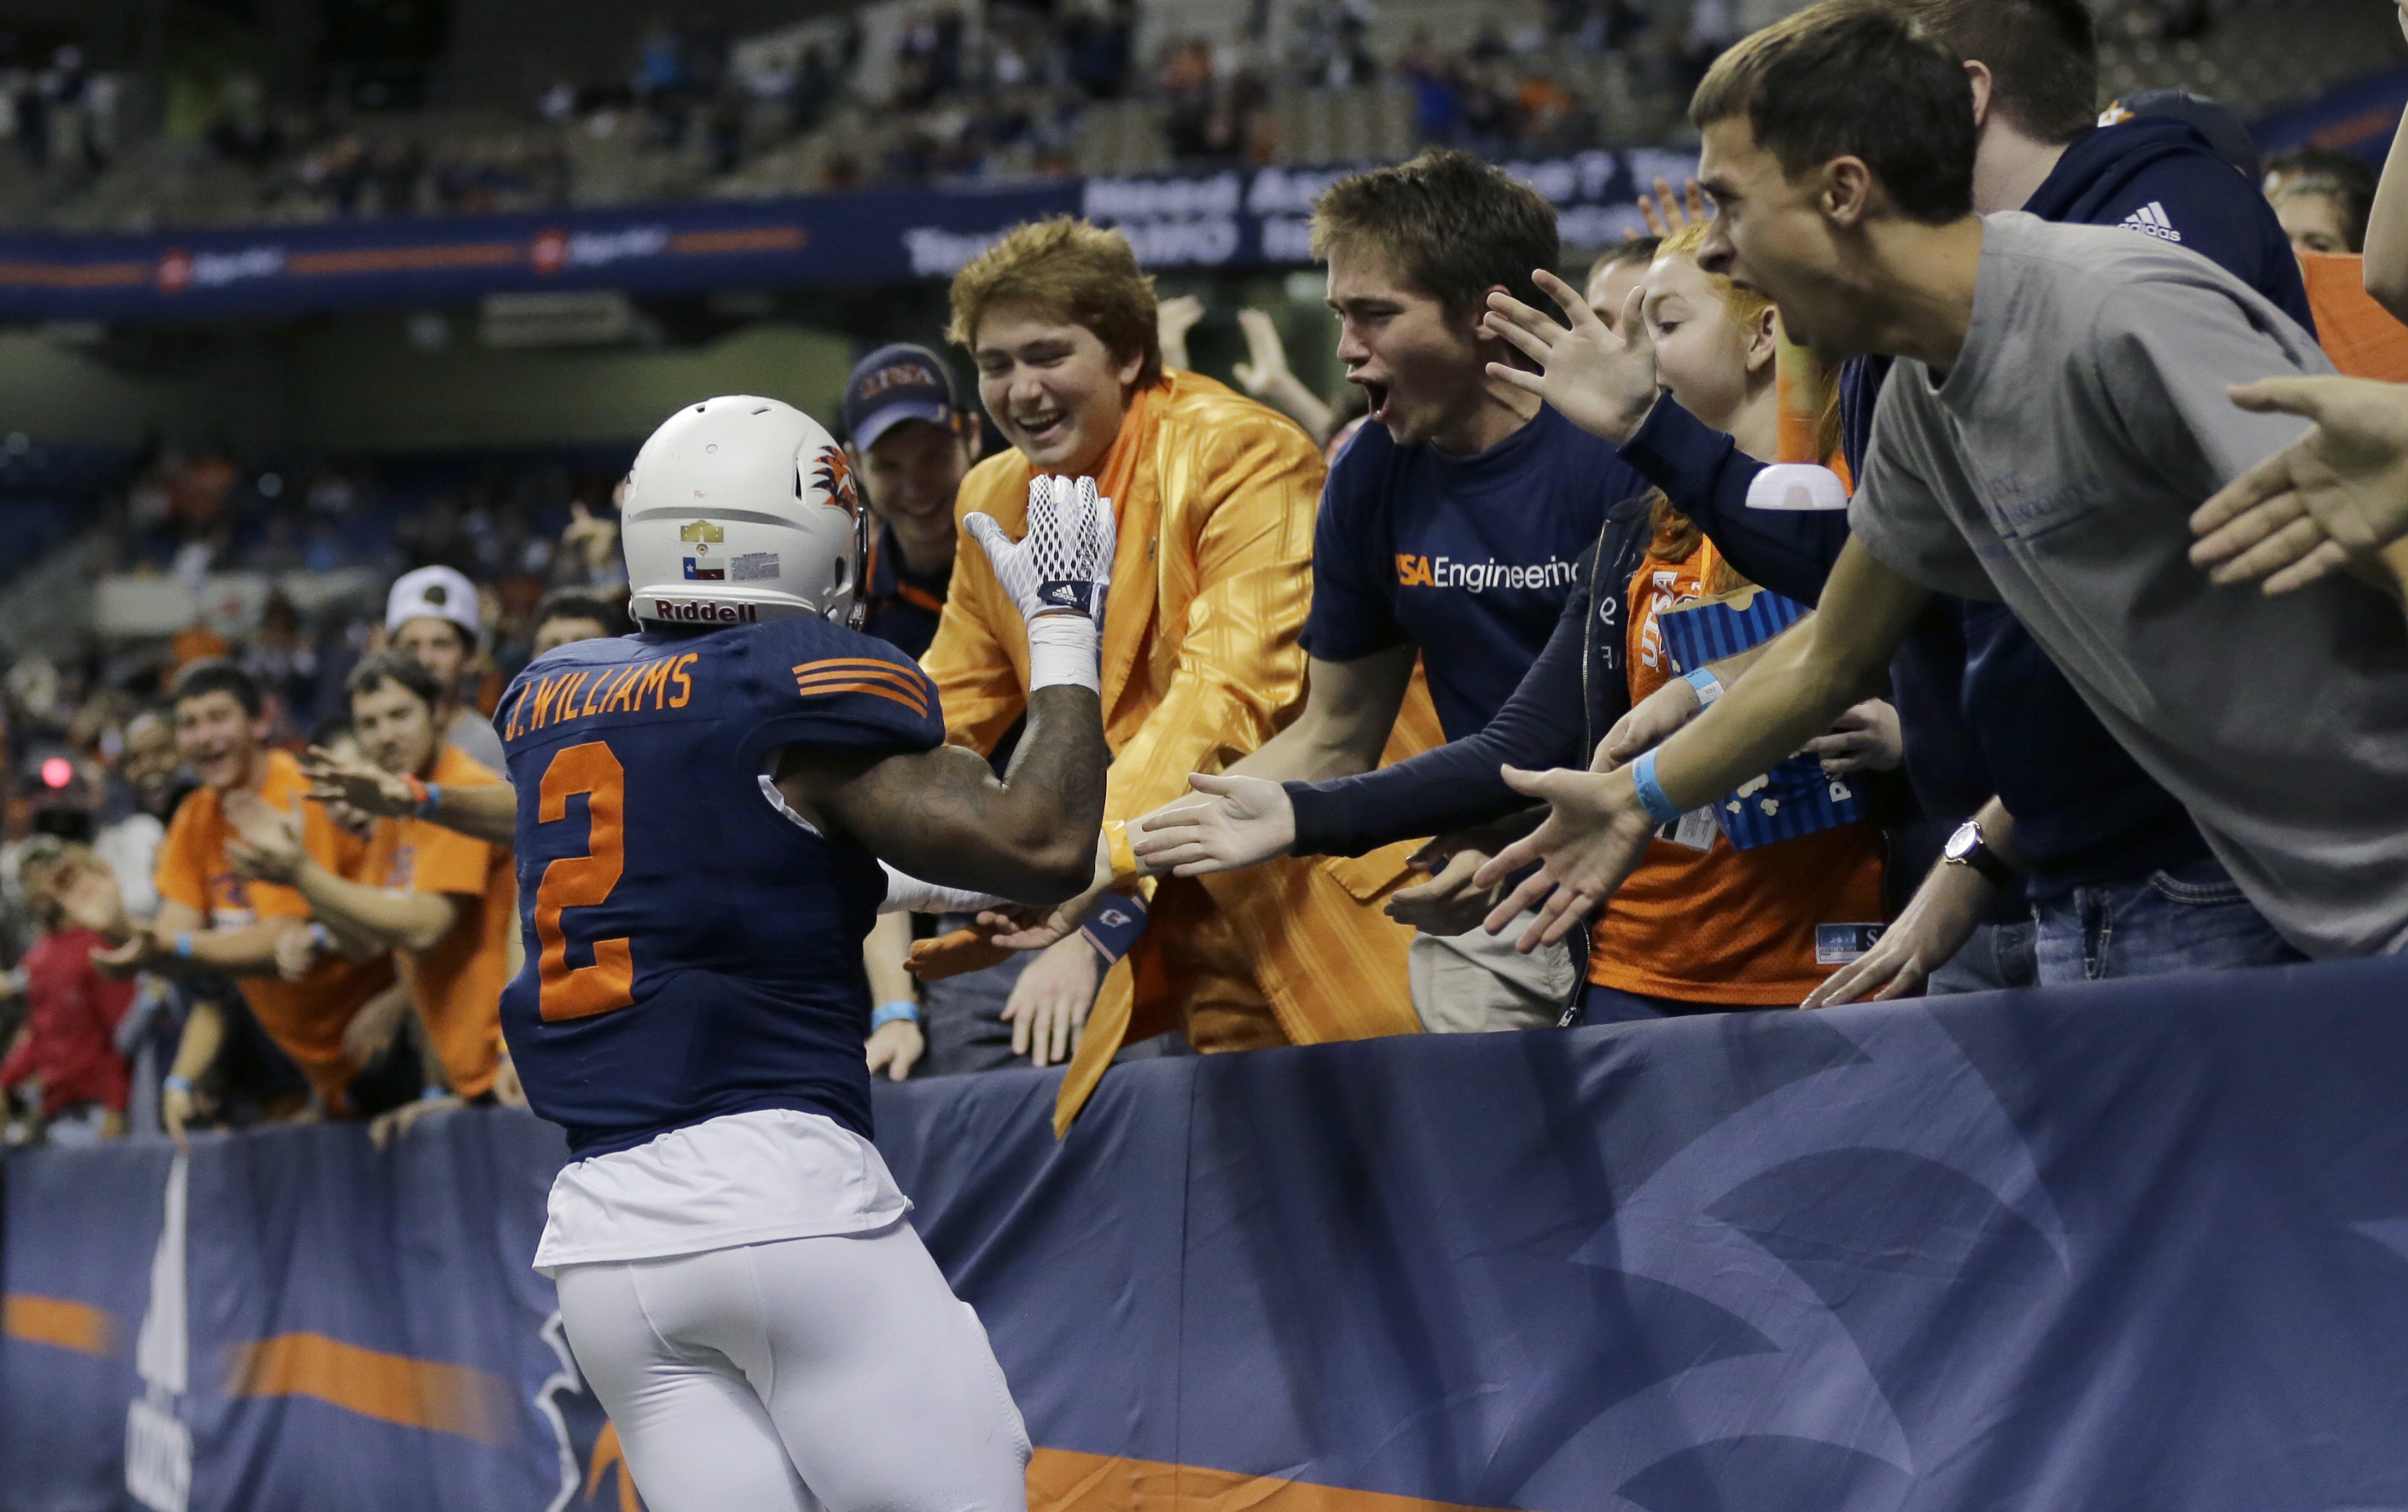 UTSA running back Jarveon Williams (2) celebrates with fans after he scored a touchdown against Rice during the first half of an NCAA college football game, Saturday, Nov. 21, 2015, in San Antonio. (AP Photo/Eric Gay)